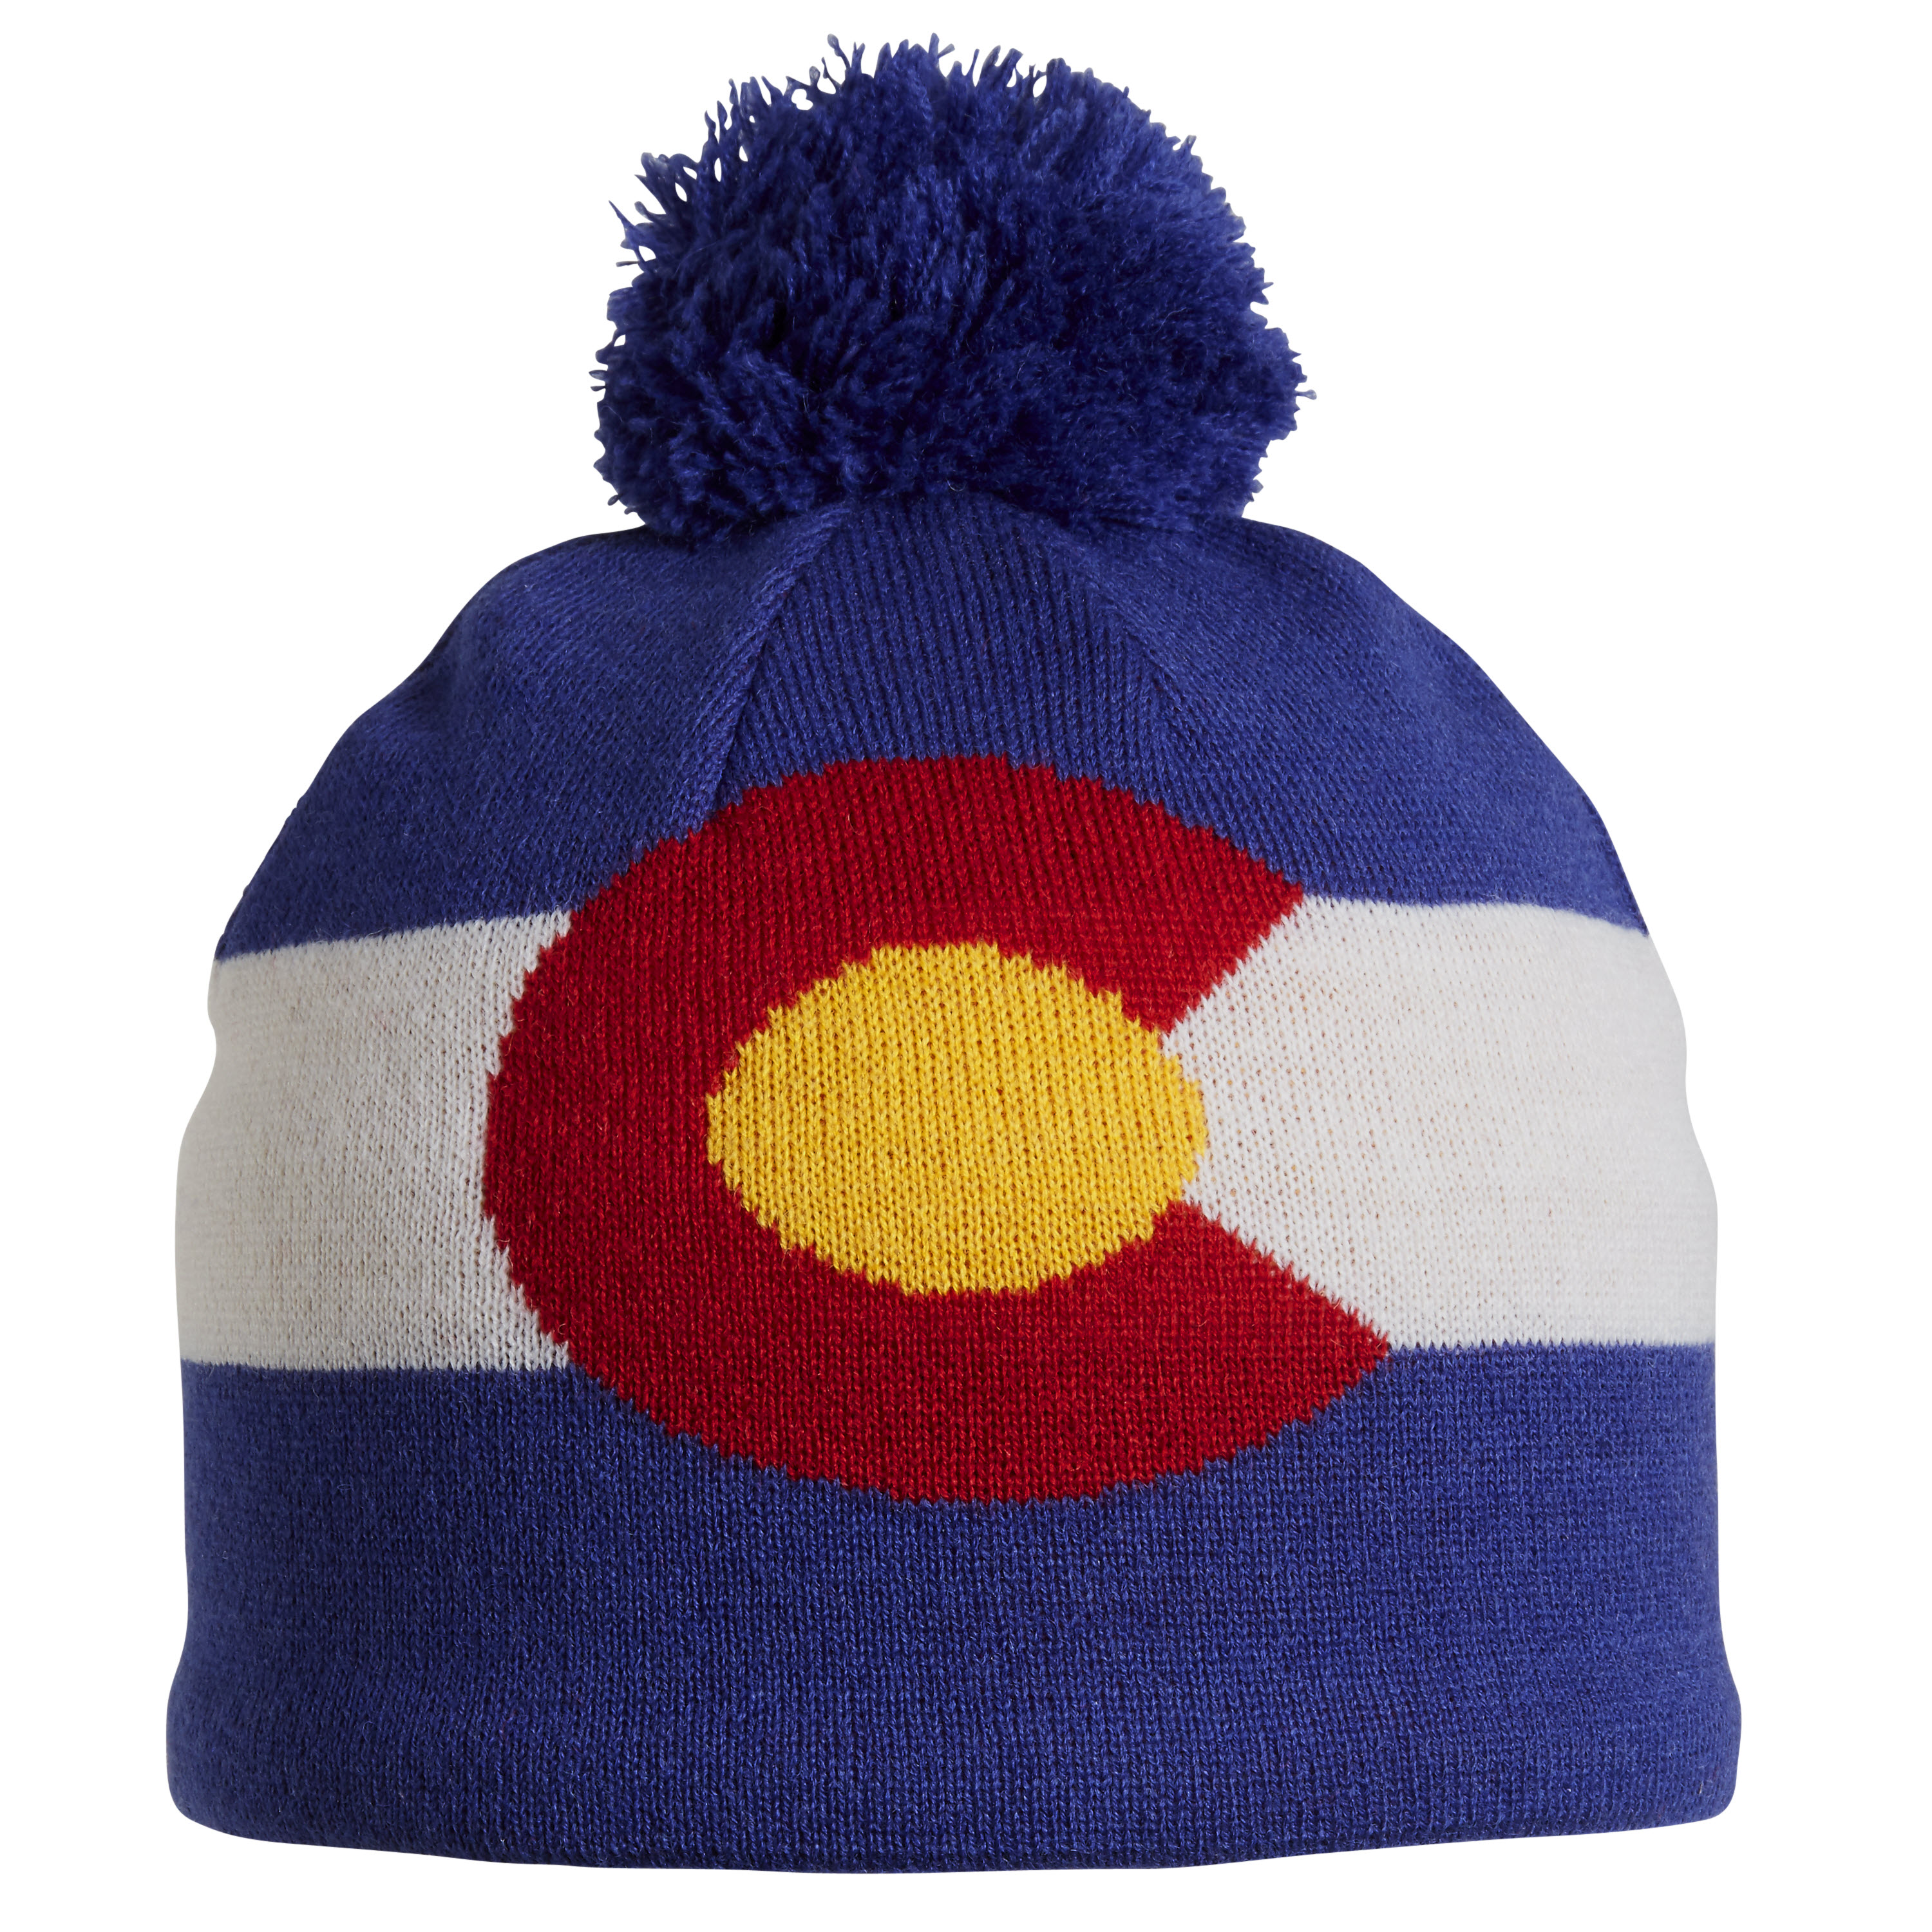 Turtle Fur Colorado Pom Merino Wool Ski Hat  05665609cbe